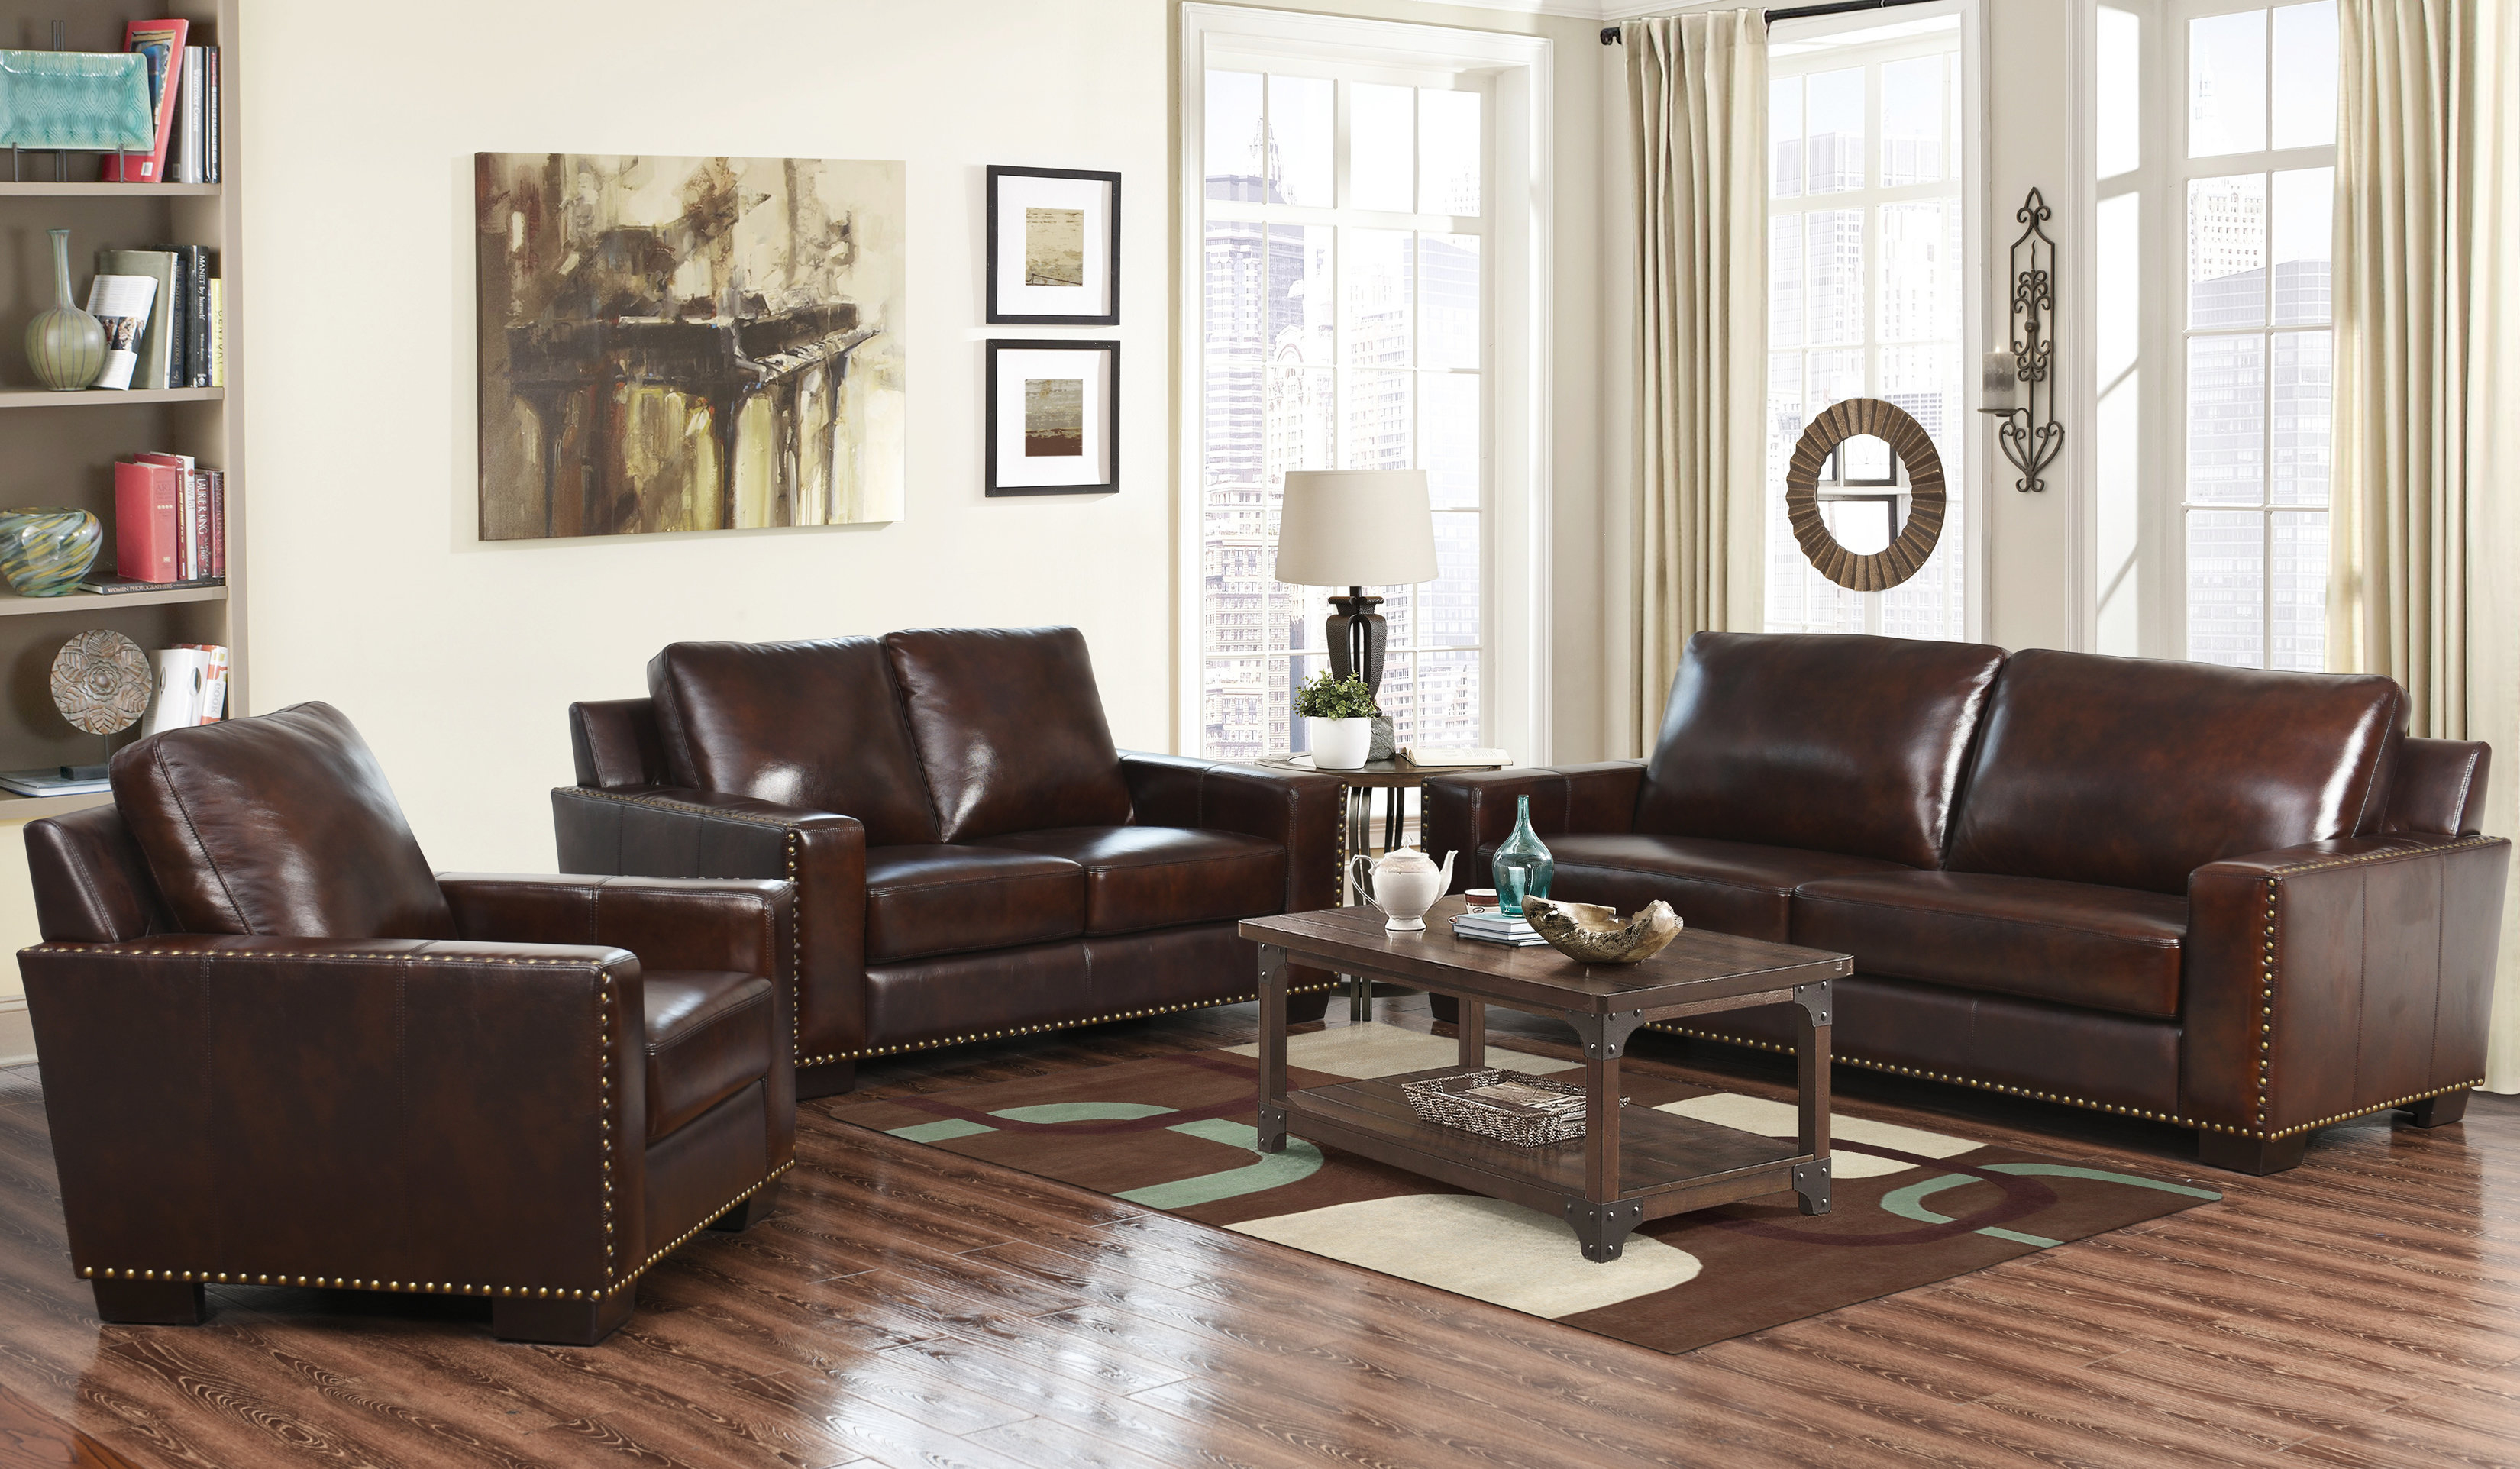 Red Barrel Studio Portsmouth 3 Piece Leather Living Room Set Wayfair with Italian Leather Living Room Sets